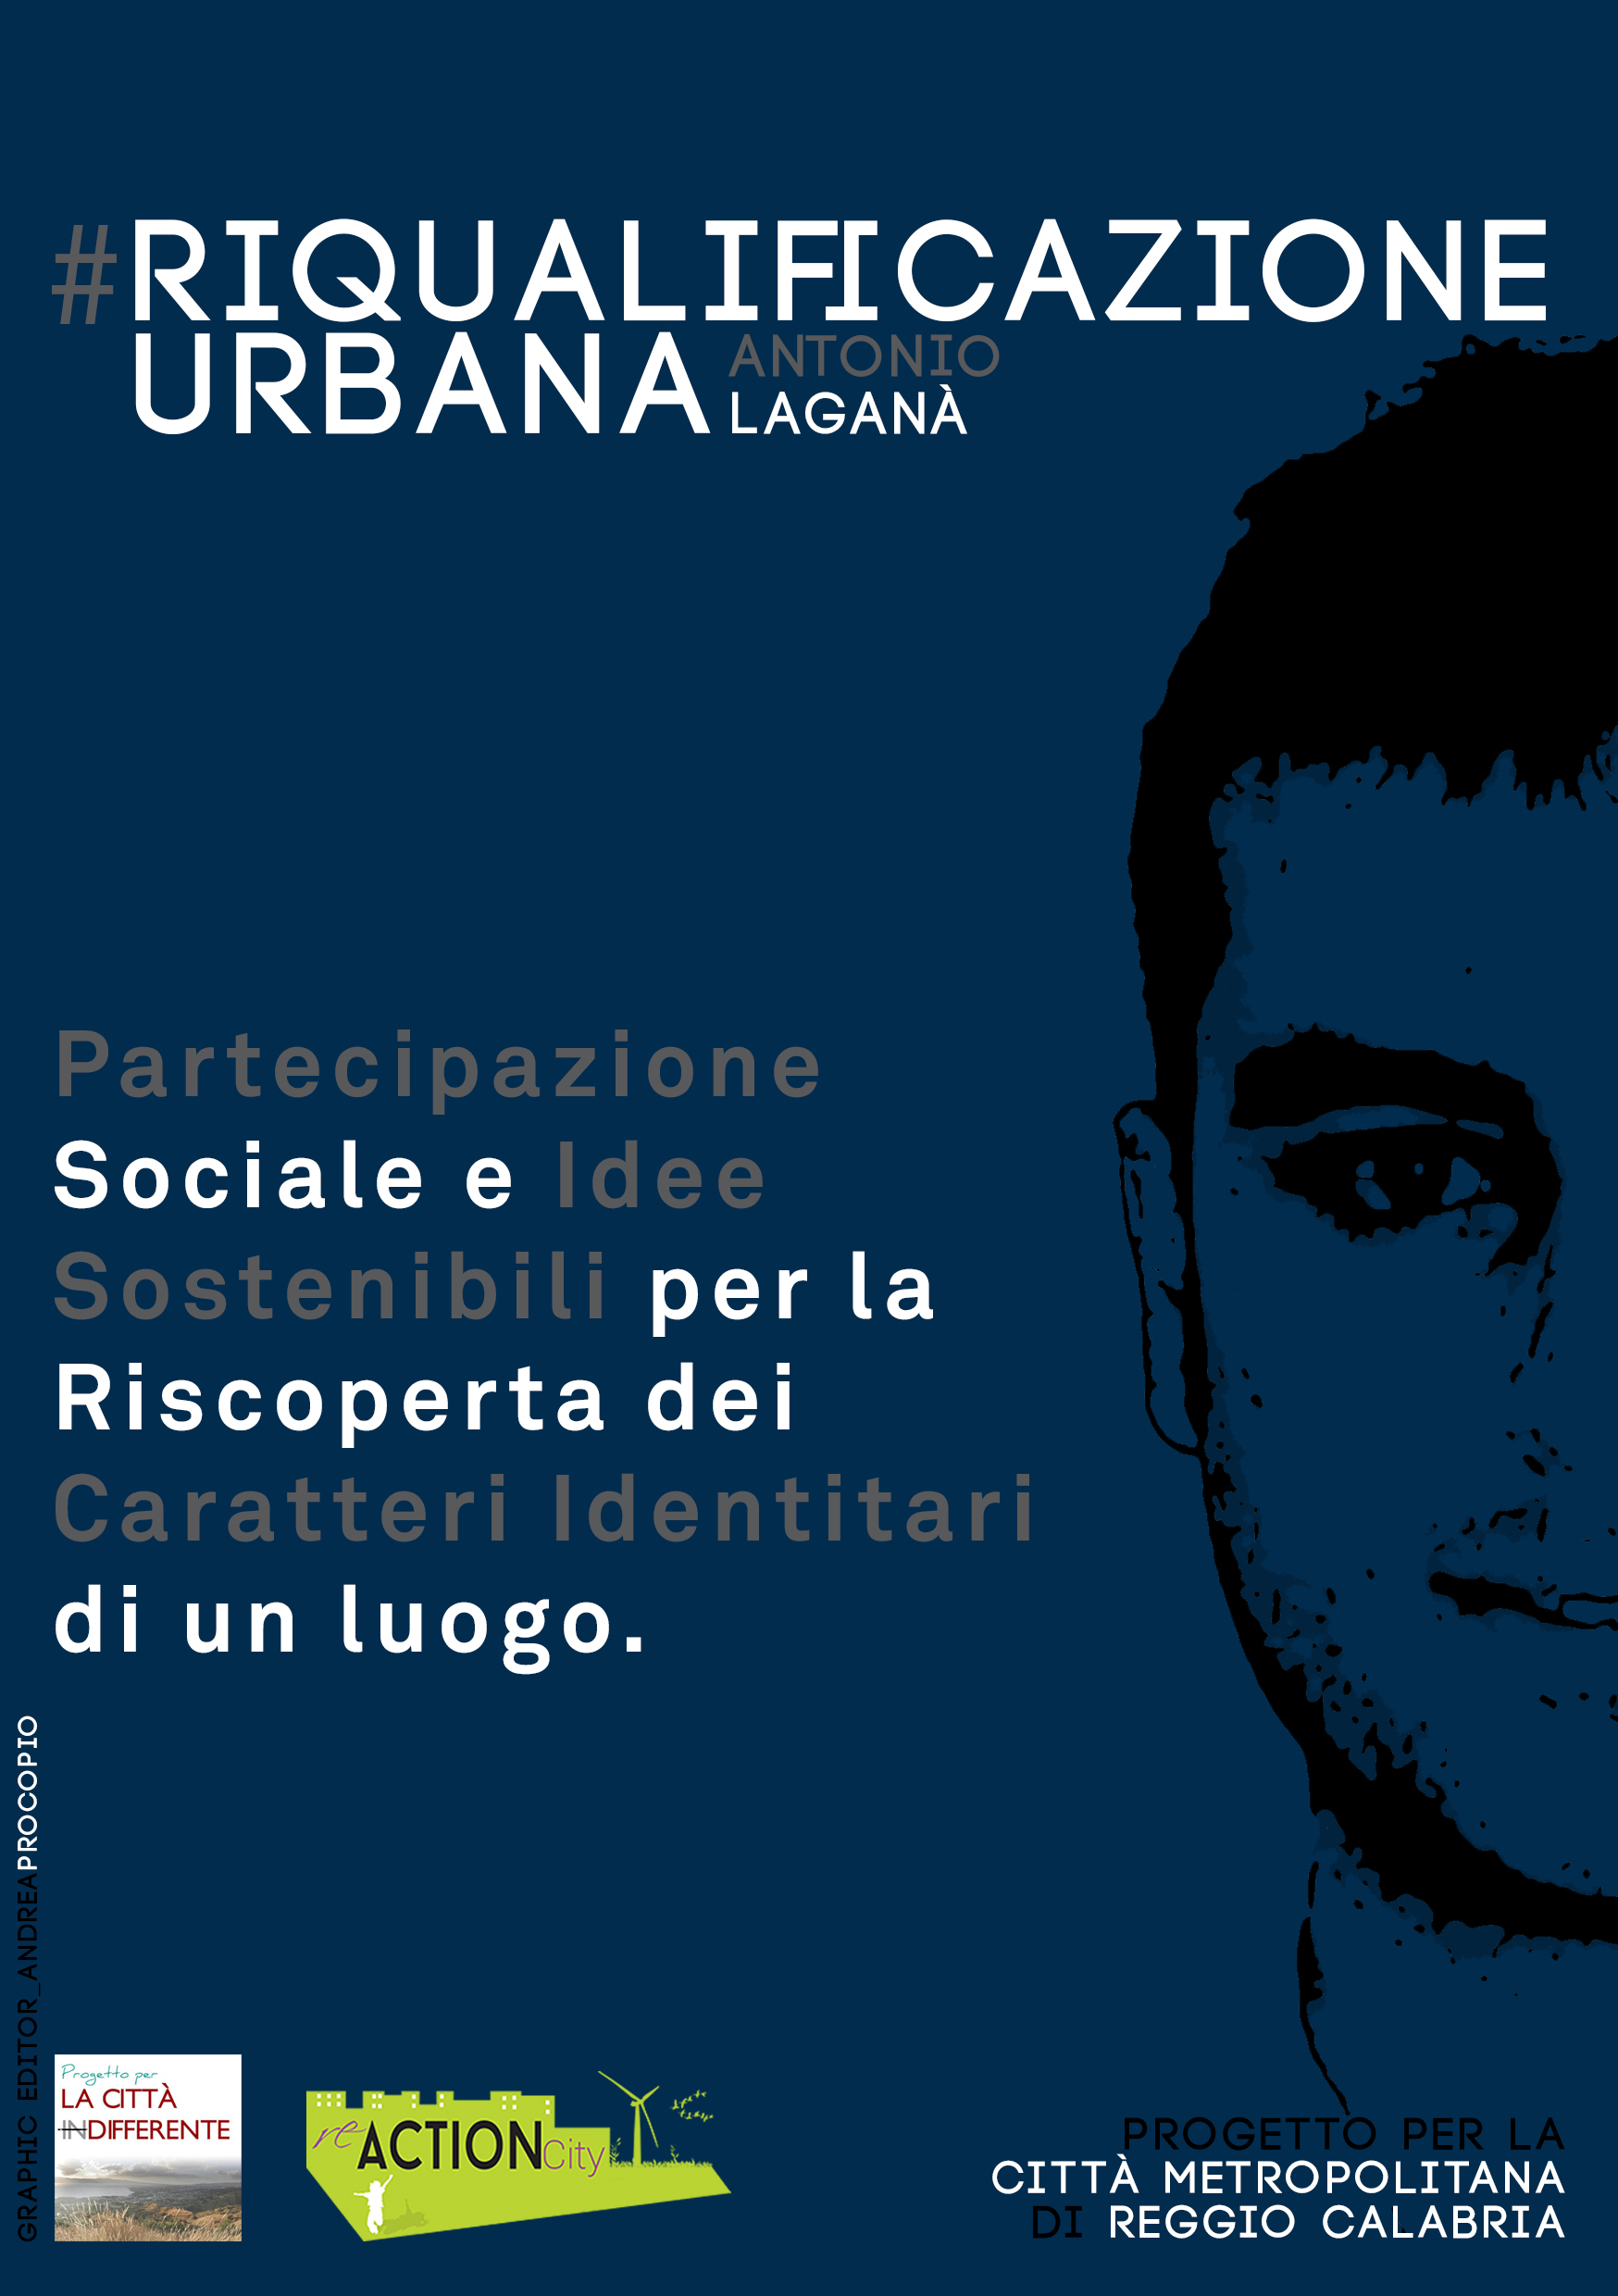 post-it_A.Laganà_#riqulificazioneurbana.jpg